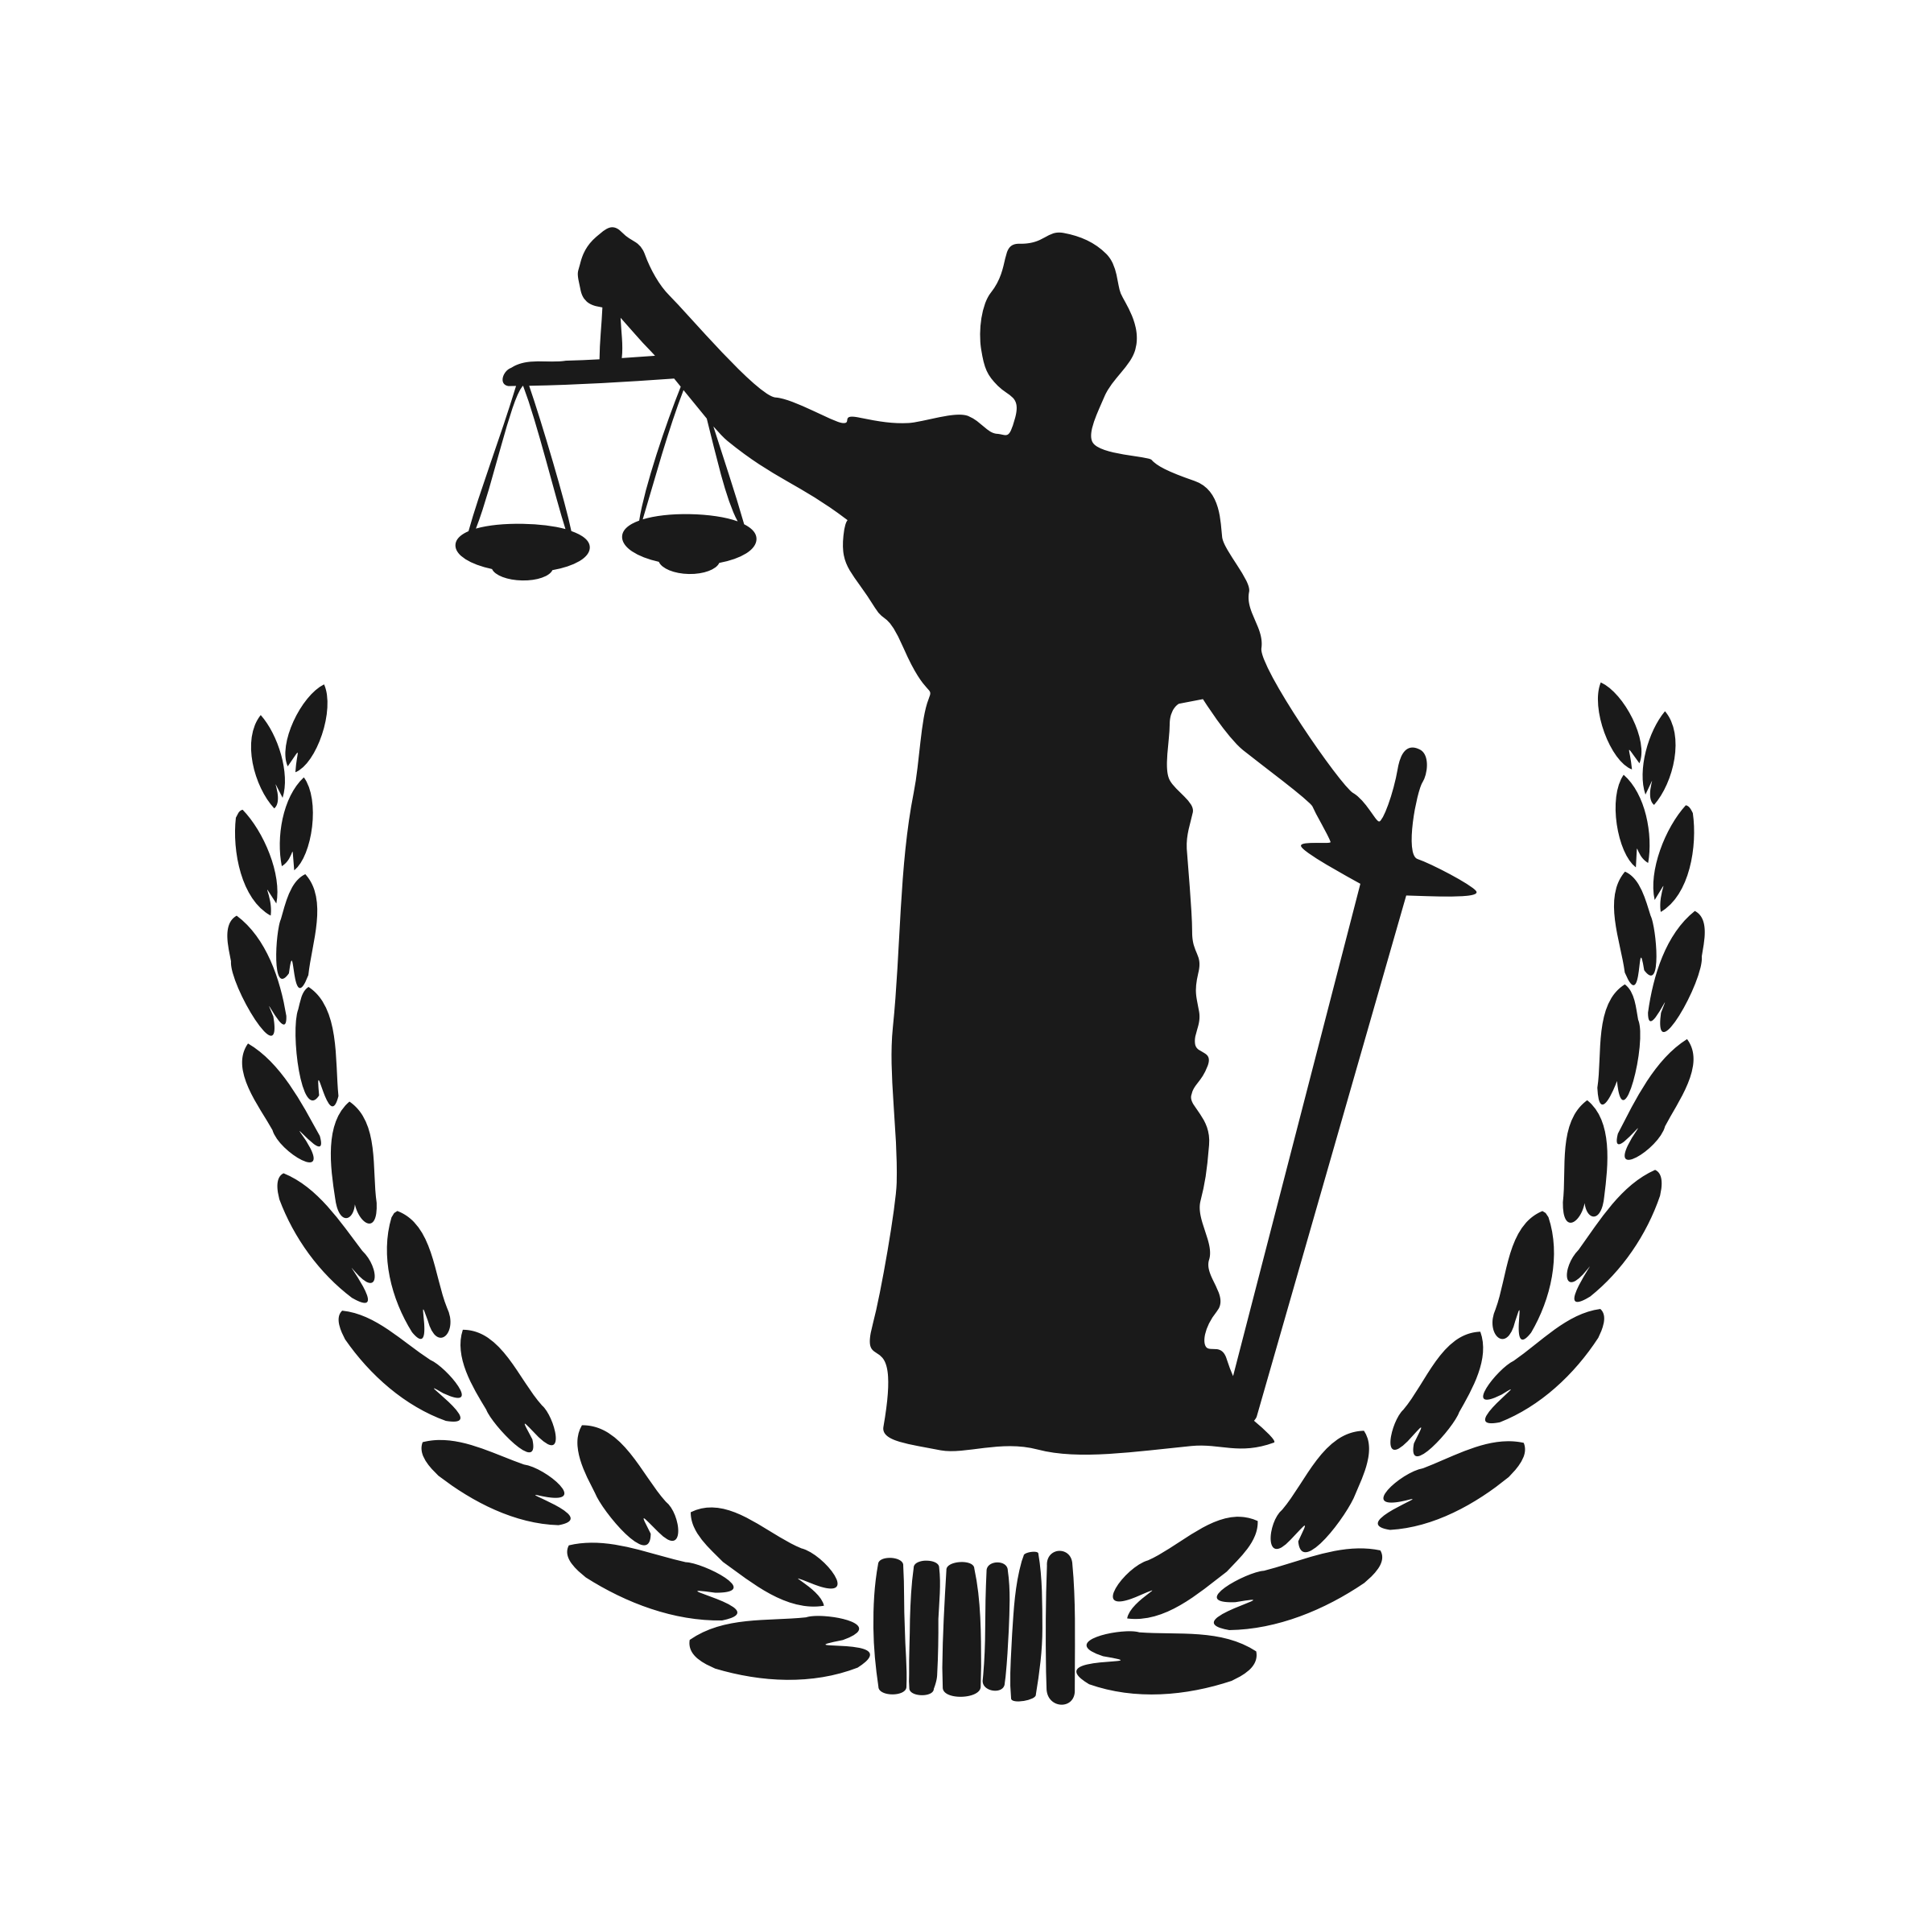 Justice clipart clipartall 6